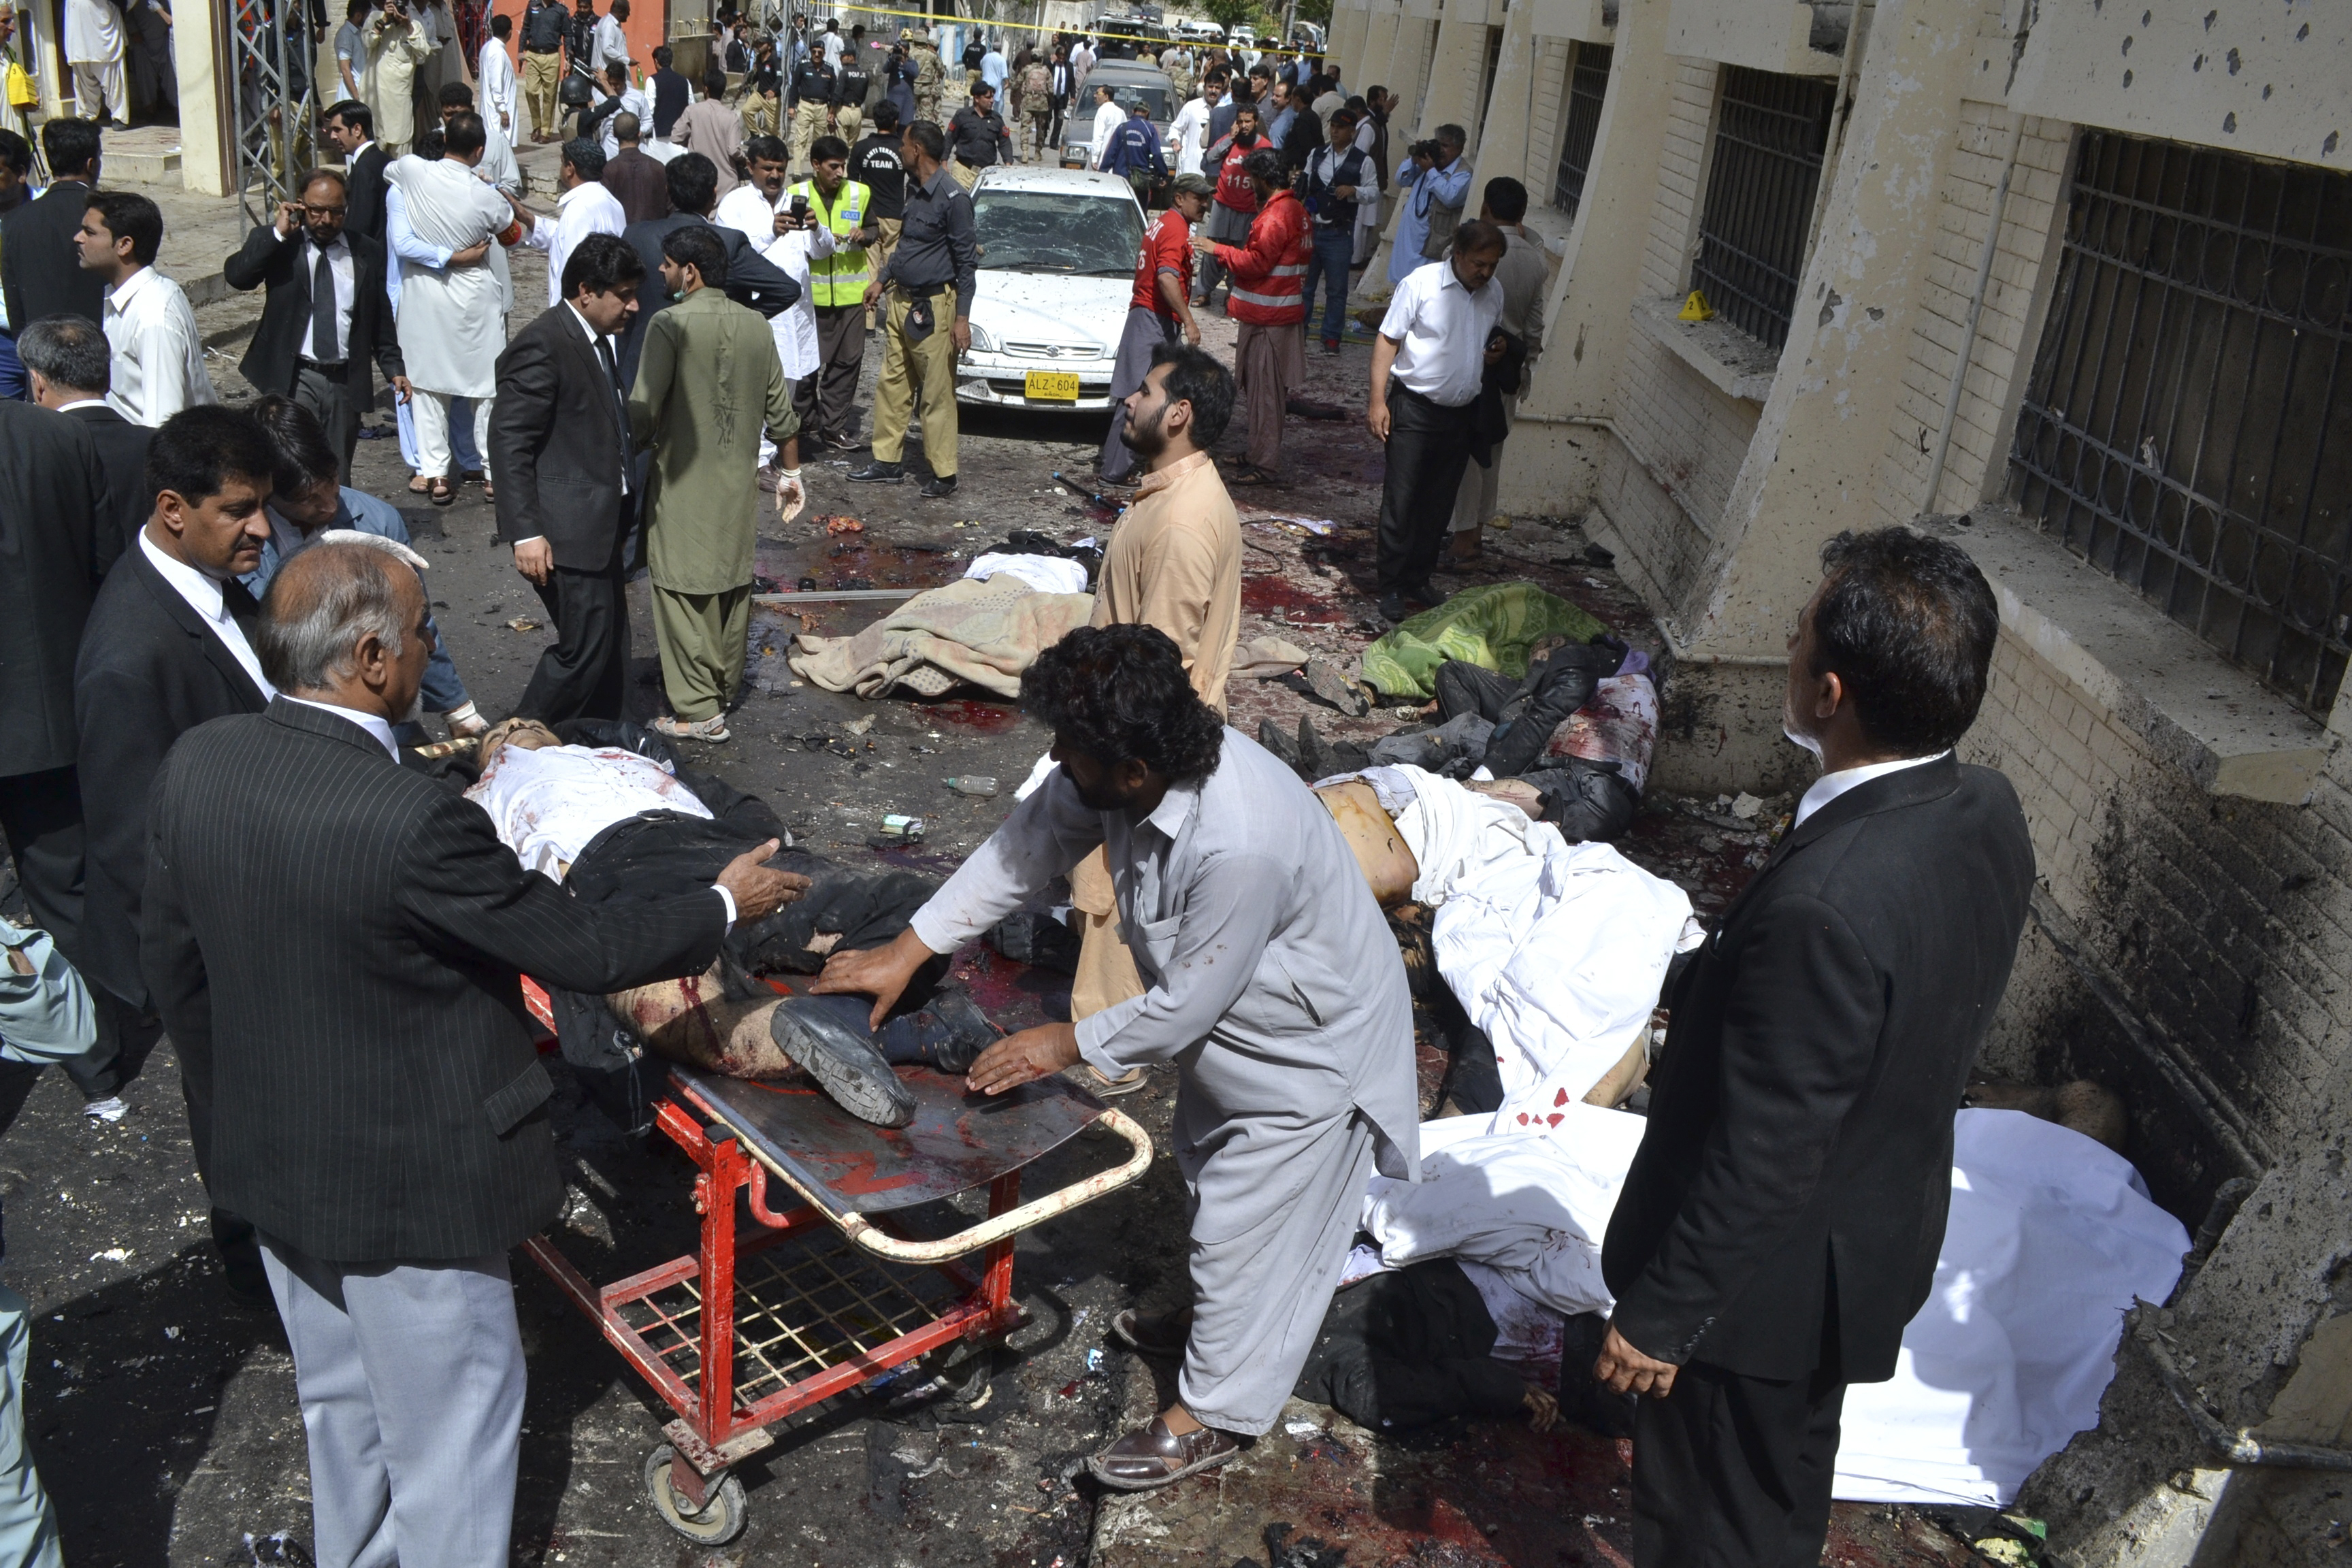 People help victims of a bomb blast in Quetta, Pakistan, Monday, Aug. 8, 2016.